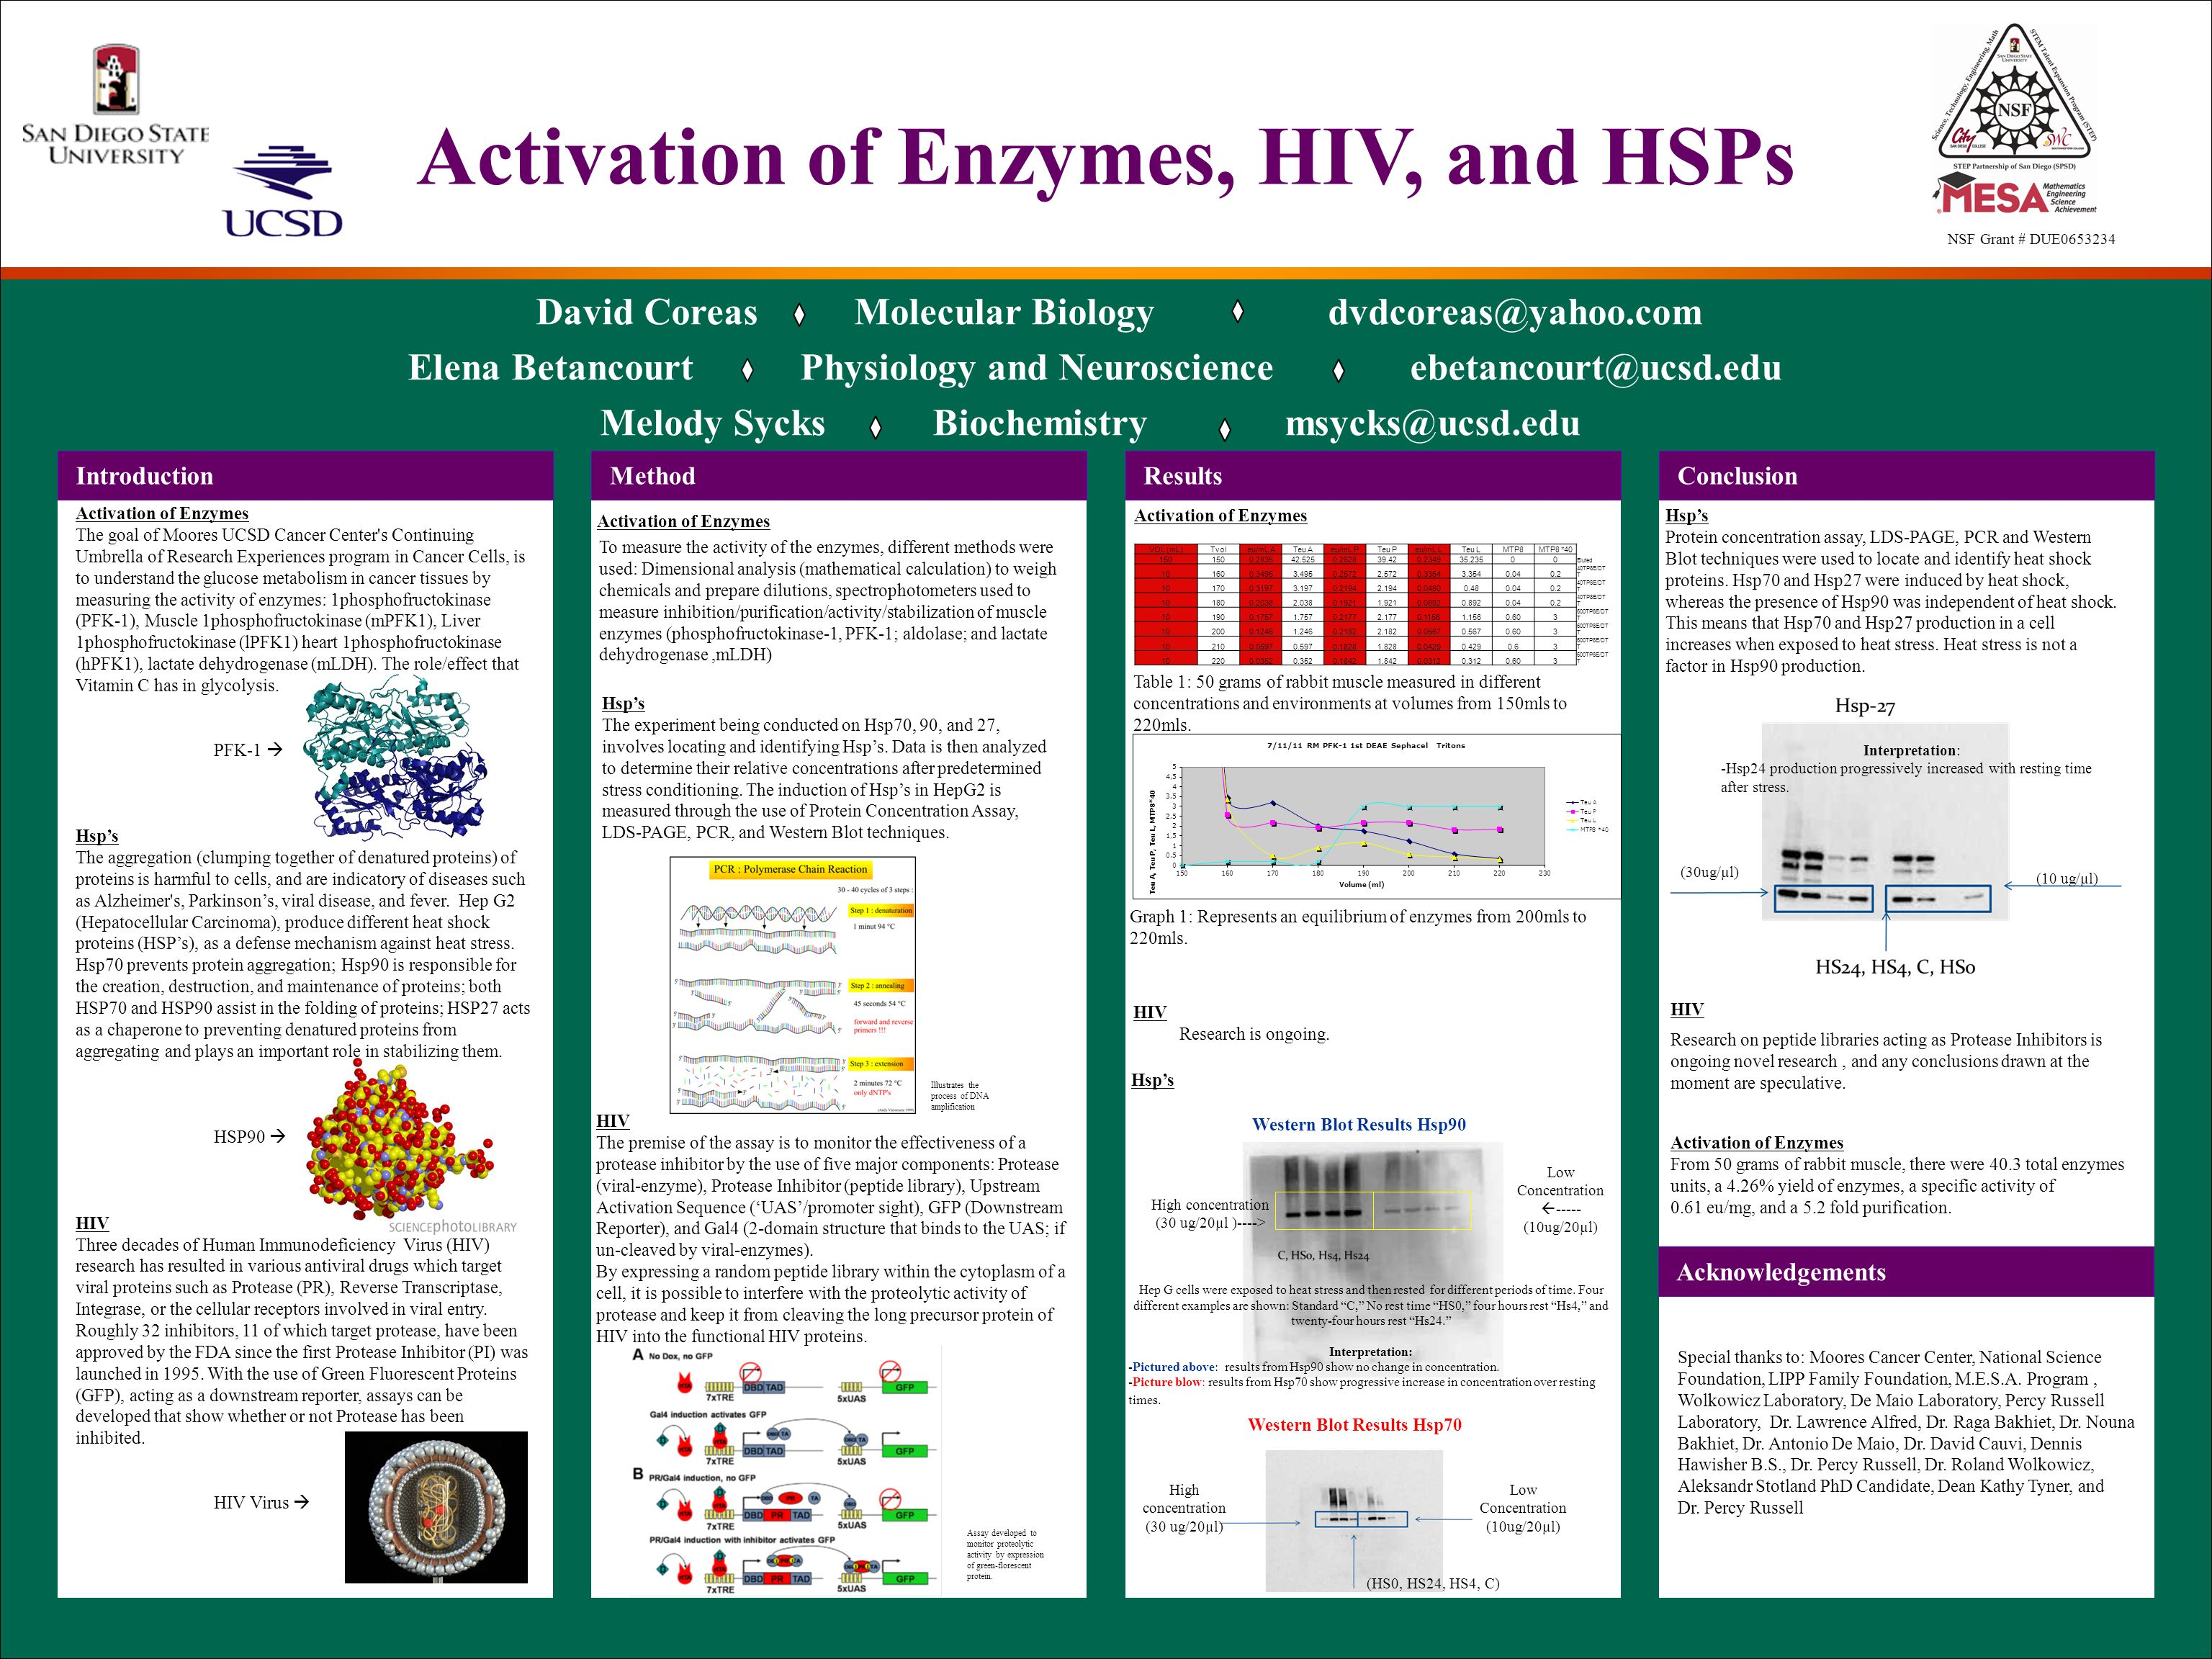 Activation of Enzymes, HIV, and HSPs